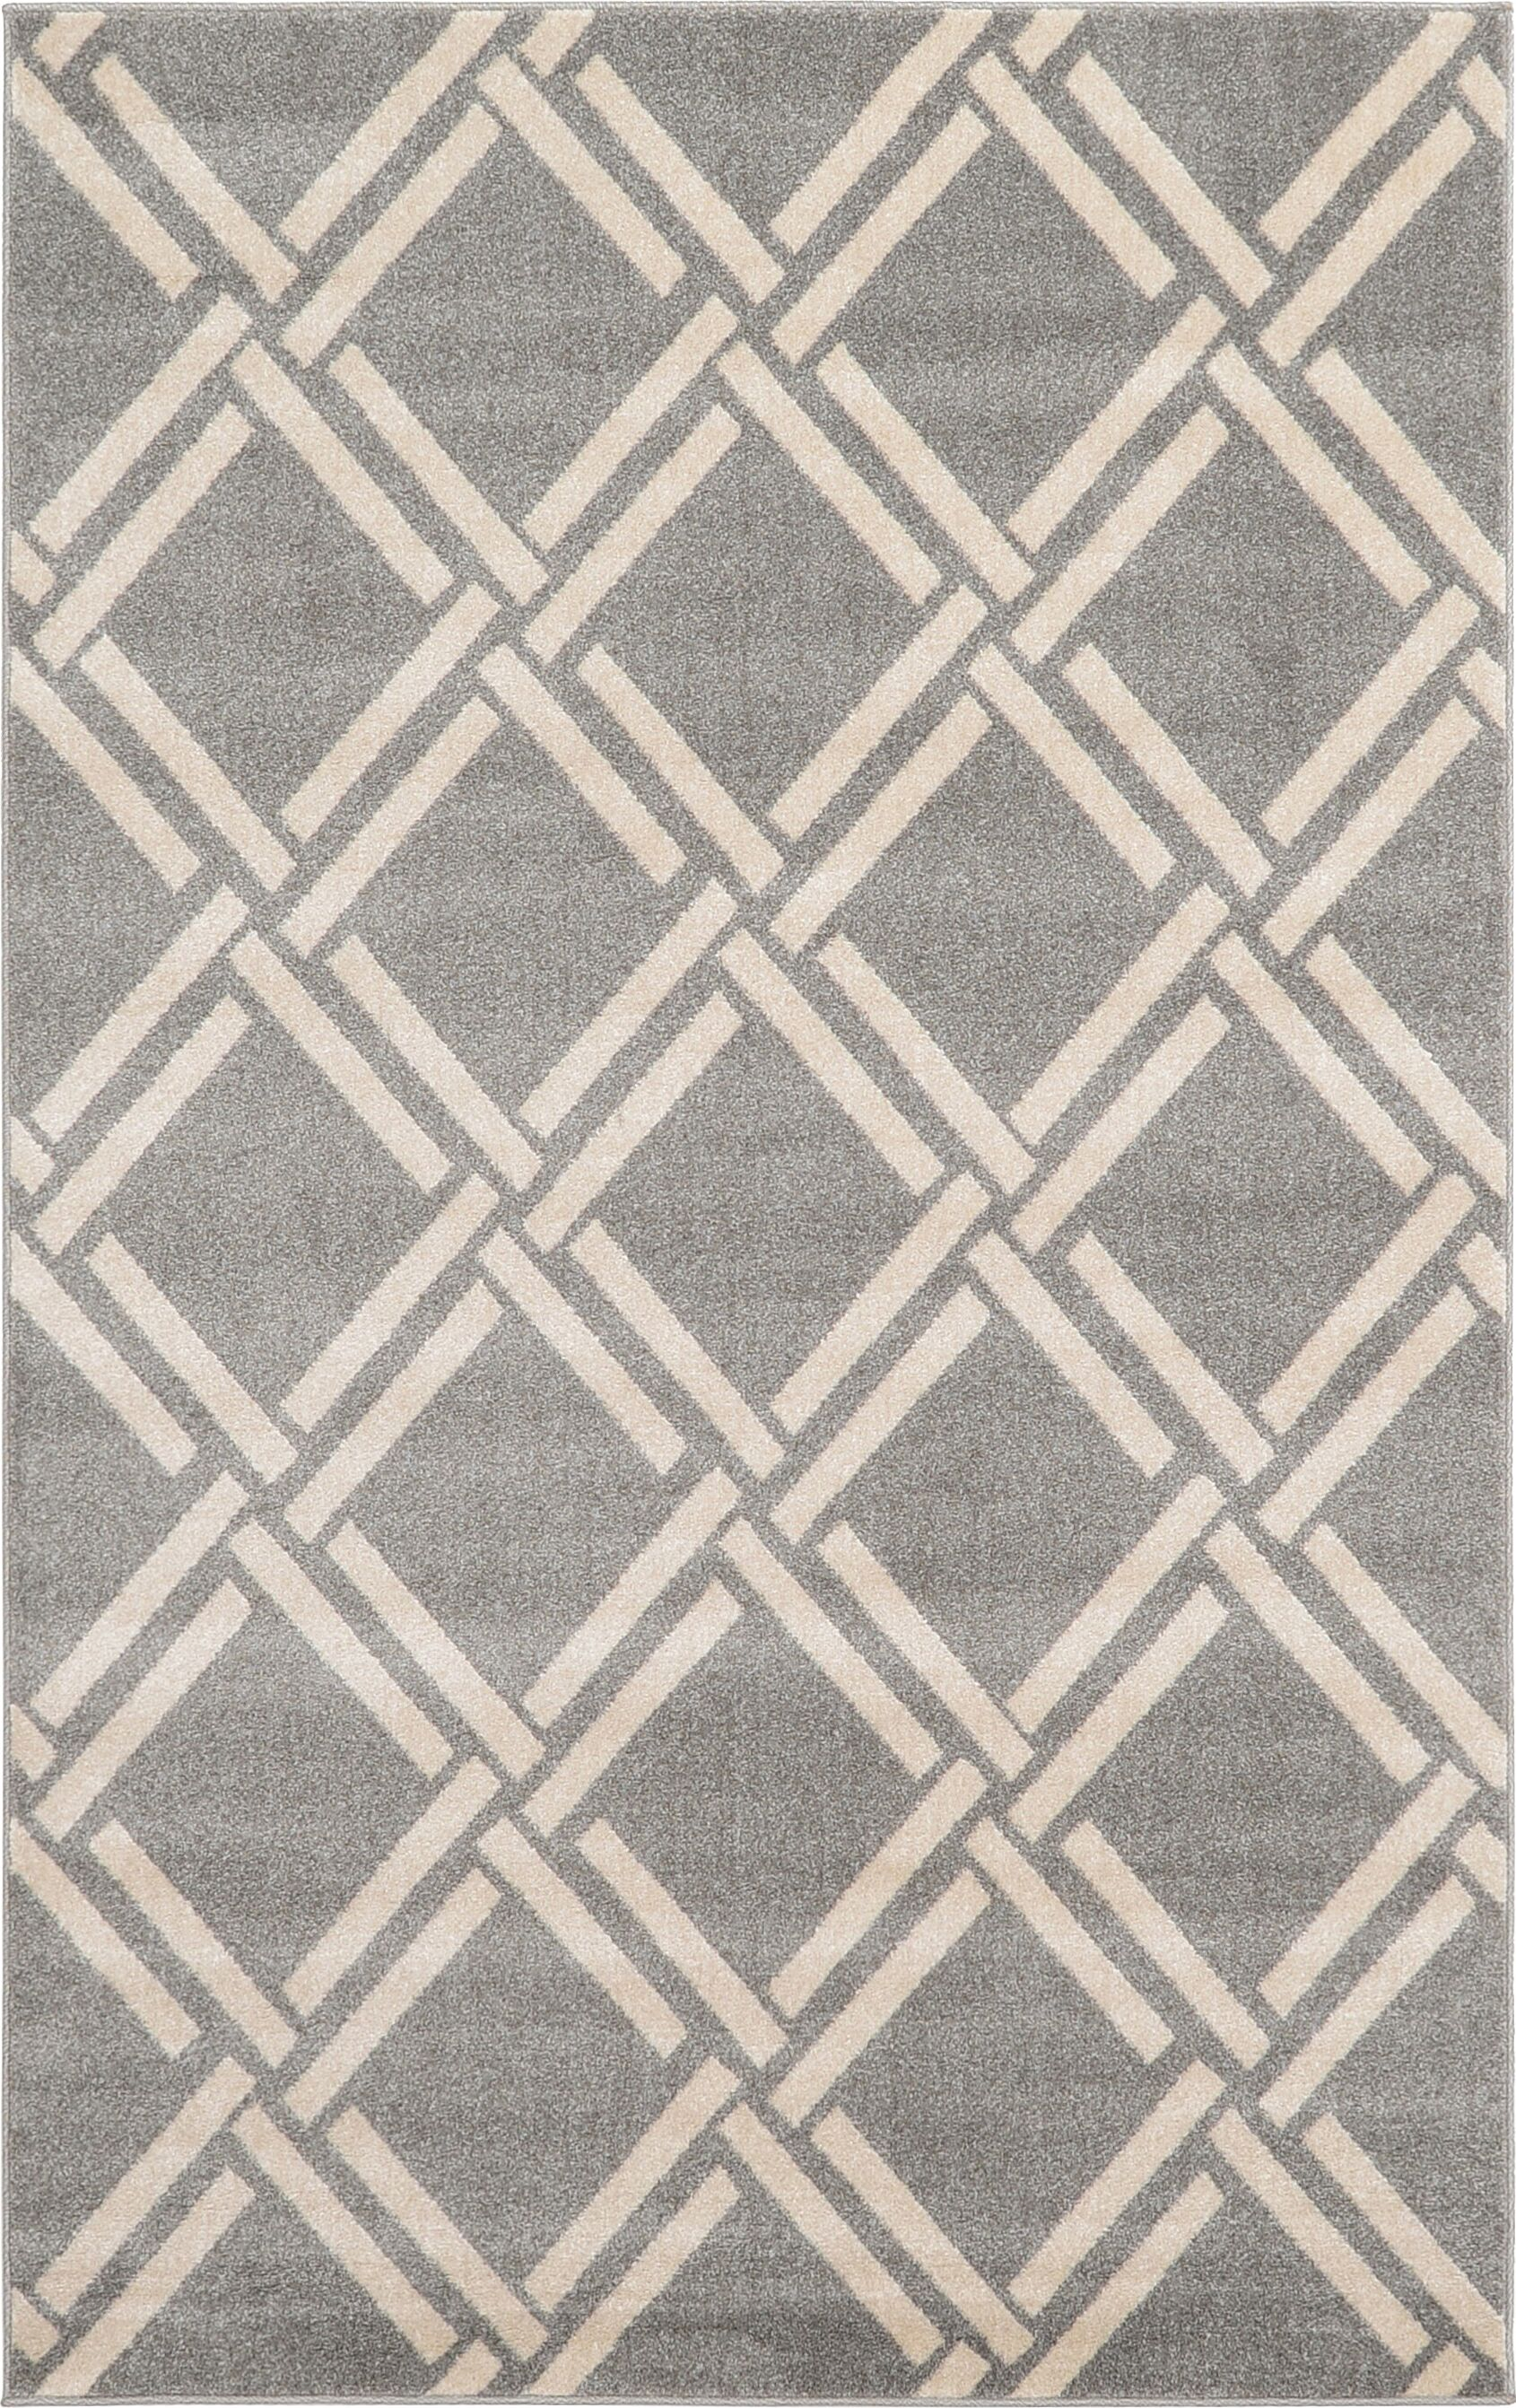 Storyvale Gray Area Rug Rug Size: Rectangle 5' x 8'